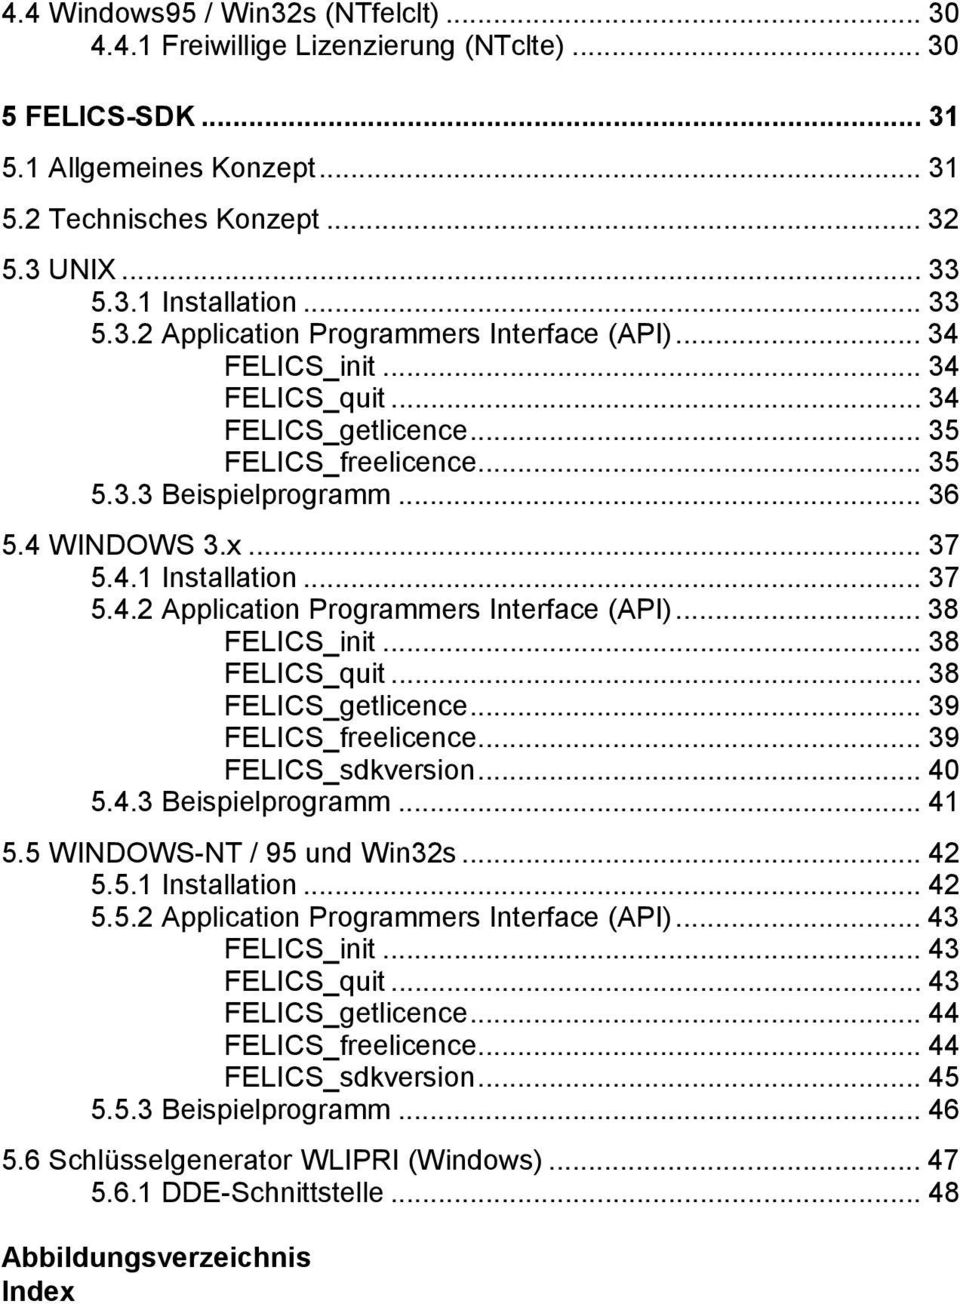 .. 37 5.4.2 Application Programmers Interface (API)... 38 FELICS_init... 38 FELICS_quit... 38 FELICS_getlicence... 39 FELICS_freelicence... 39 FELICS_sdkversion... 40 5.4.3 Beispielprogramm... 41 5.